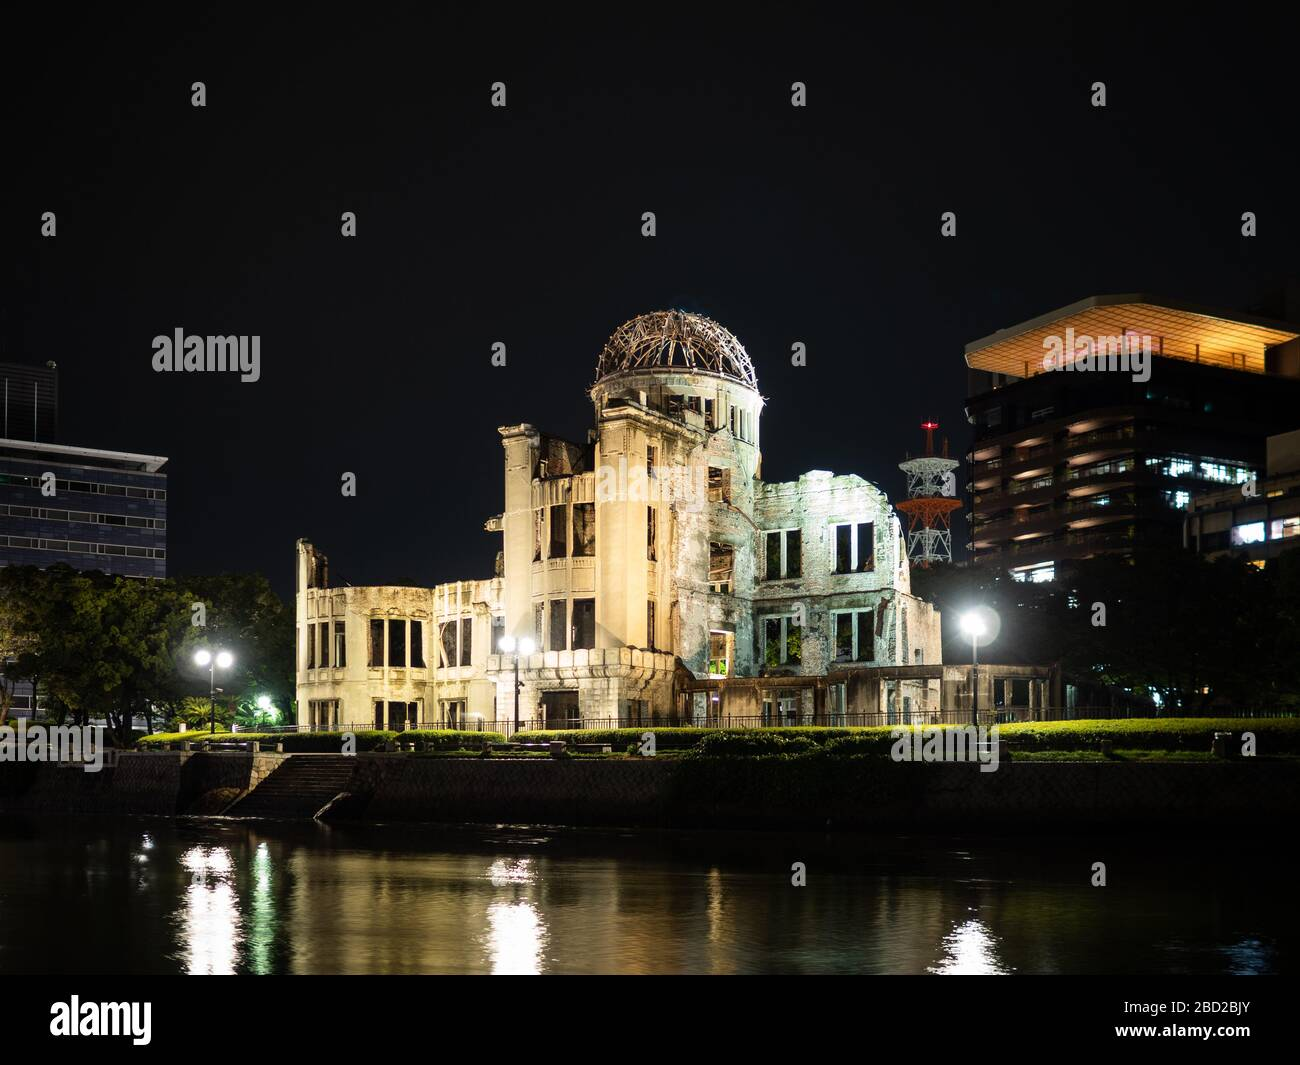 The Atomic Bomb Dome (Genbaku Dome), Hiroshima Peace Memorial Park, Japan. Stock Photo